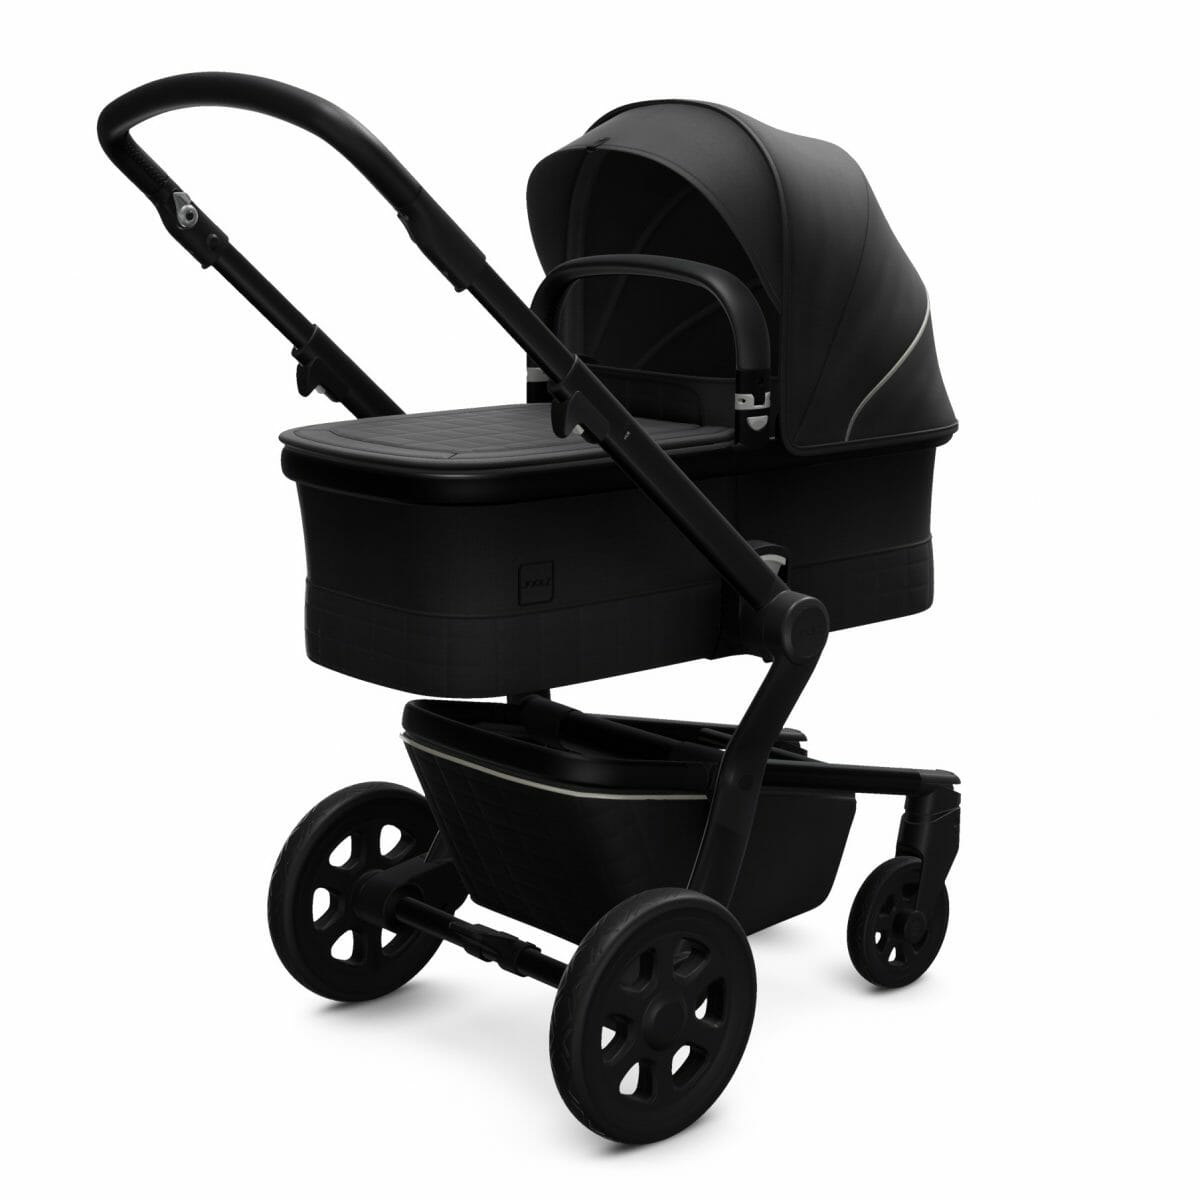 Joolz Hub Cot Brilliant Black Perspective